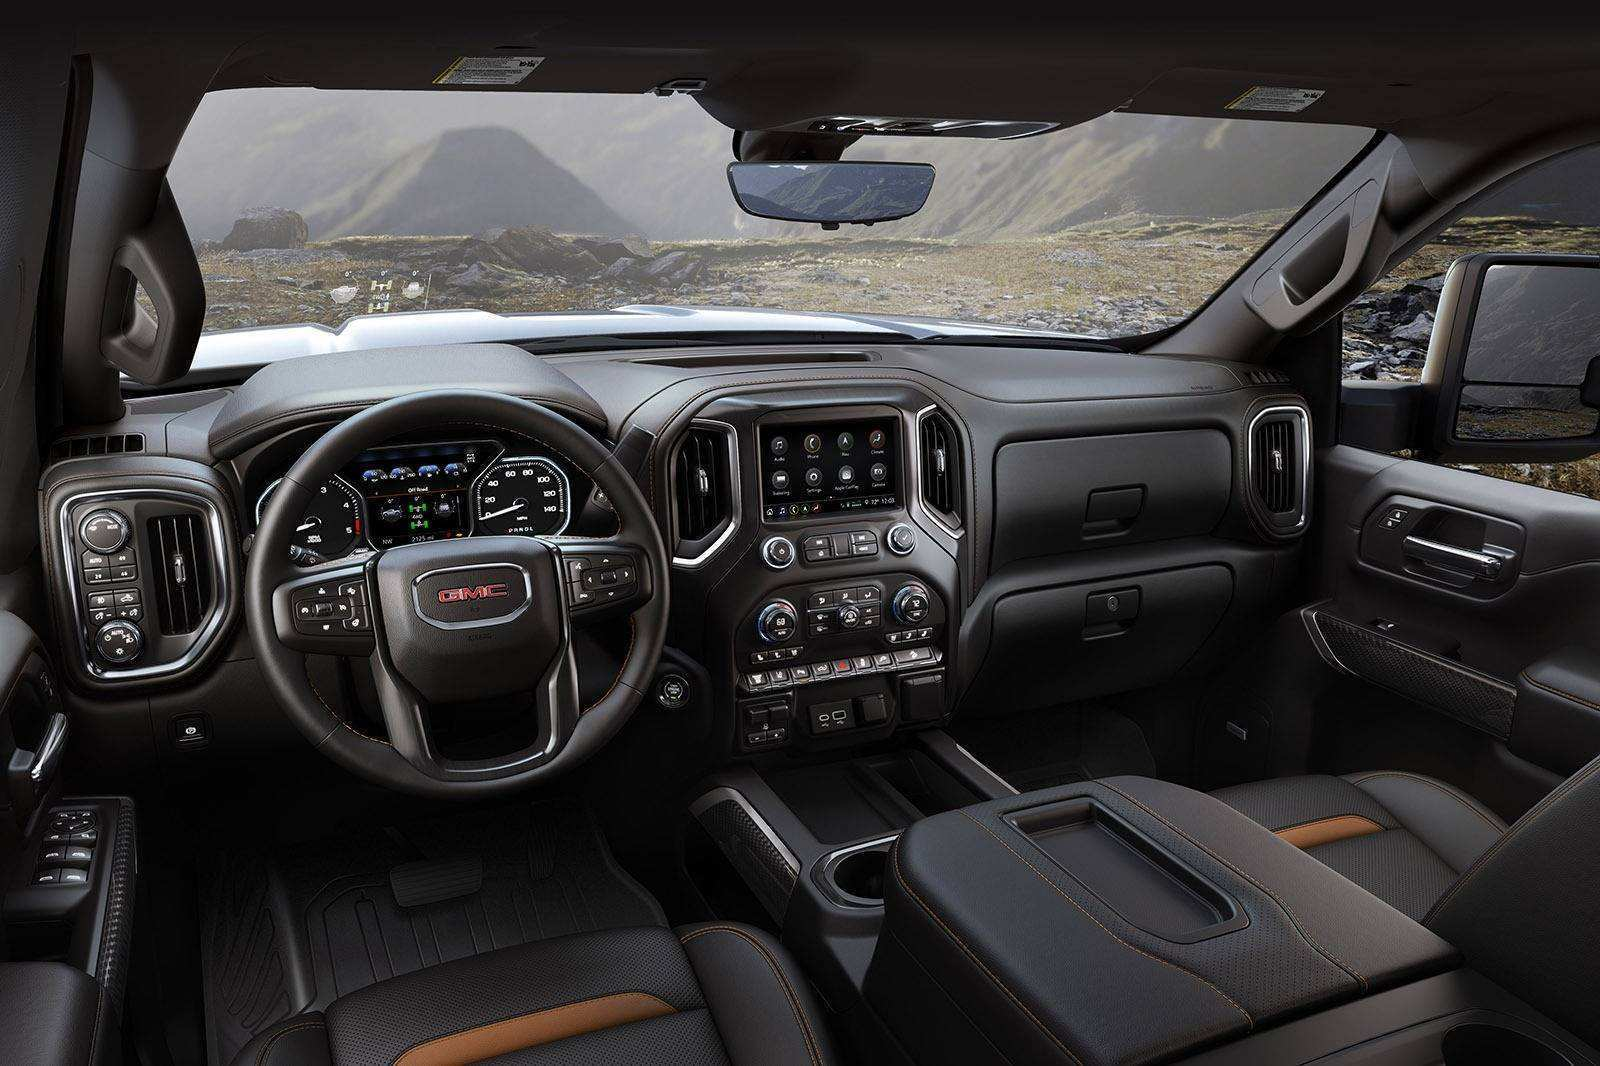 39 Best 2020 Gmc Sierra Denali 1500 Hd Review And Release Date